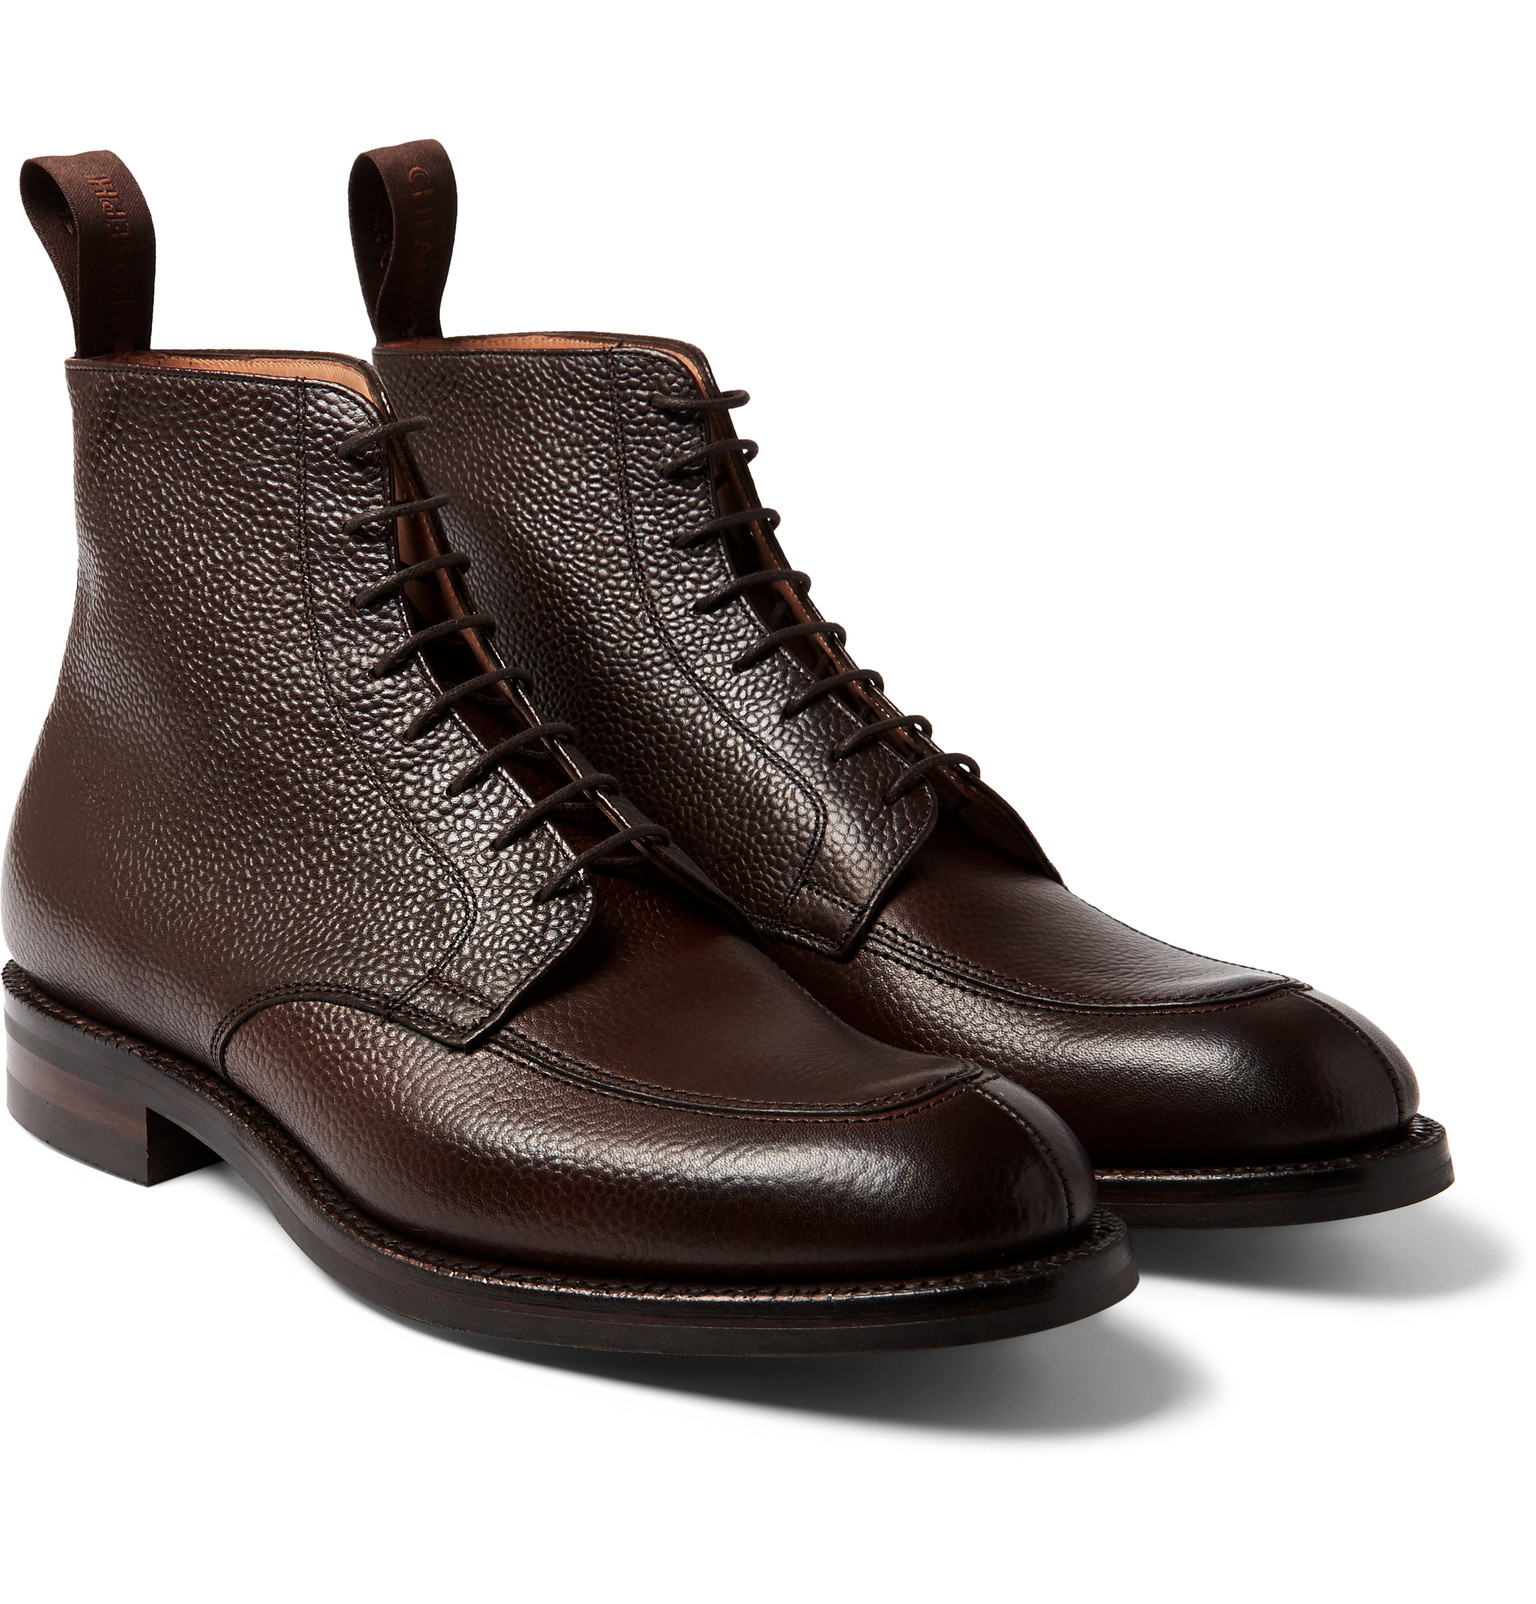 Cheaney Richmond Pebble-grain Leather Boots in Brown for Men - Lyst